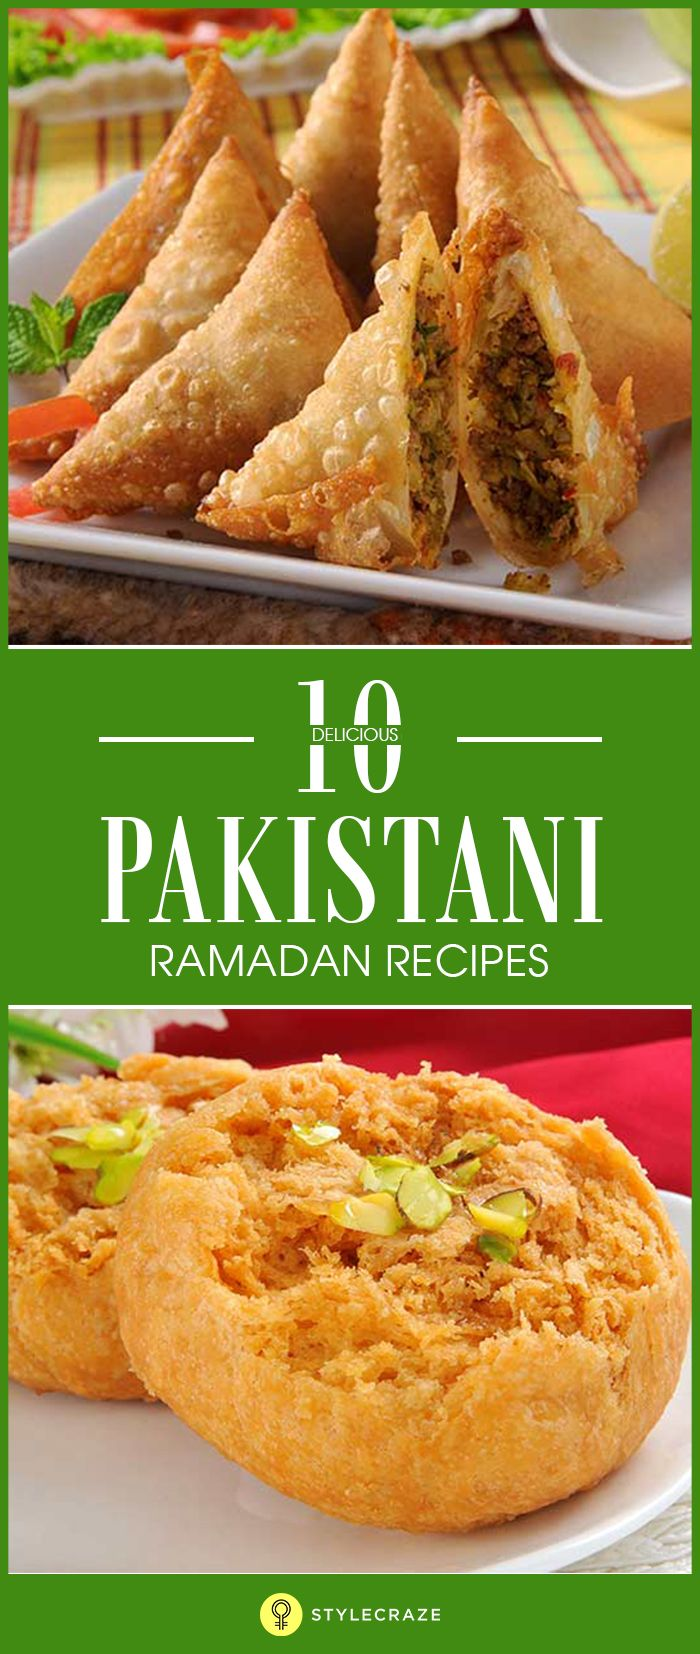 Did you ever taste Pakistani cuisine? If not, then you have to realize that you have missed out one of the tastiest cuisines on the planet. Not only are Pakistani cuisines sinfully delectable, but the packages of health and aroma they bring along can send you dancing in the heavens!